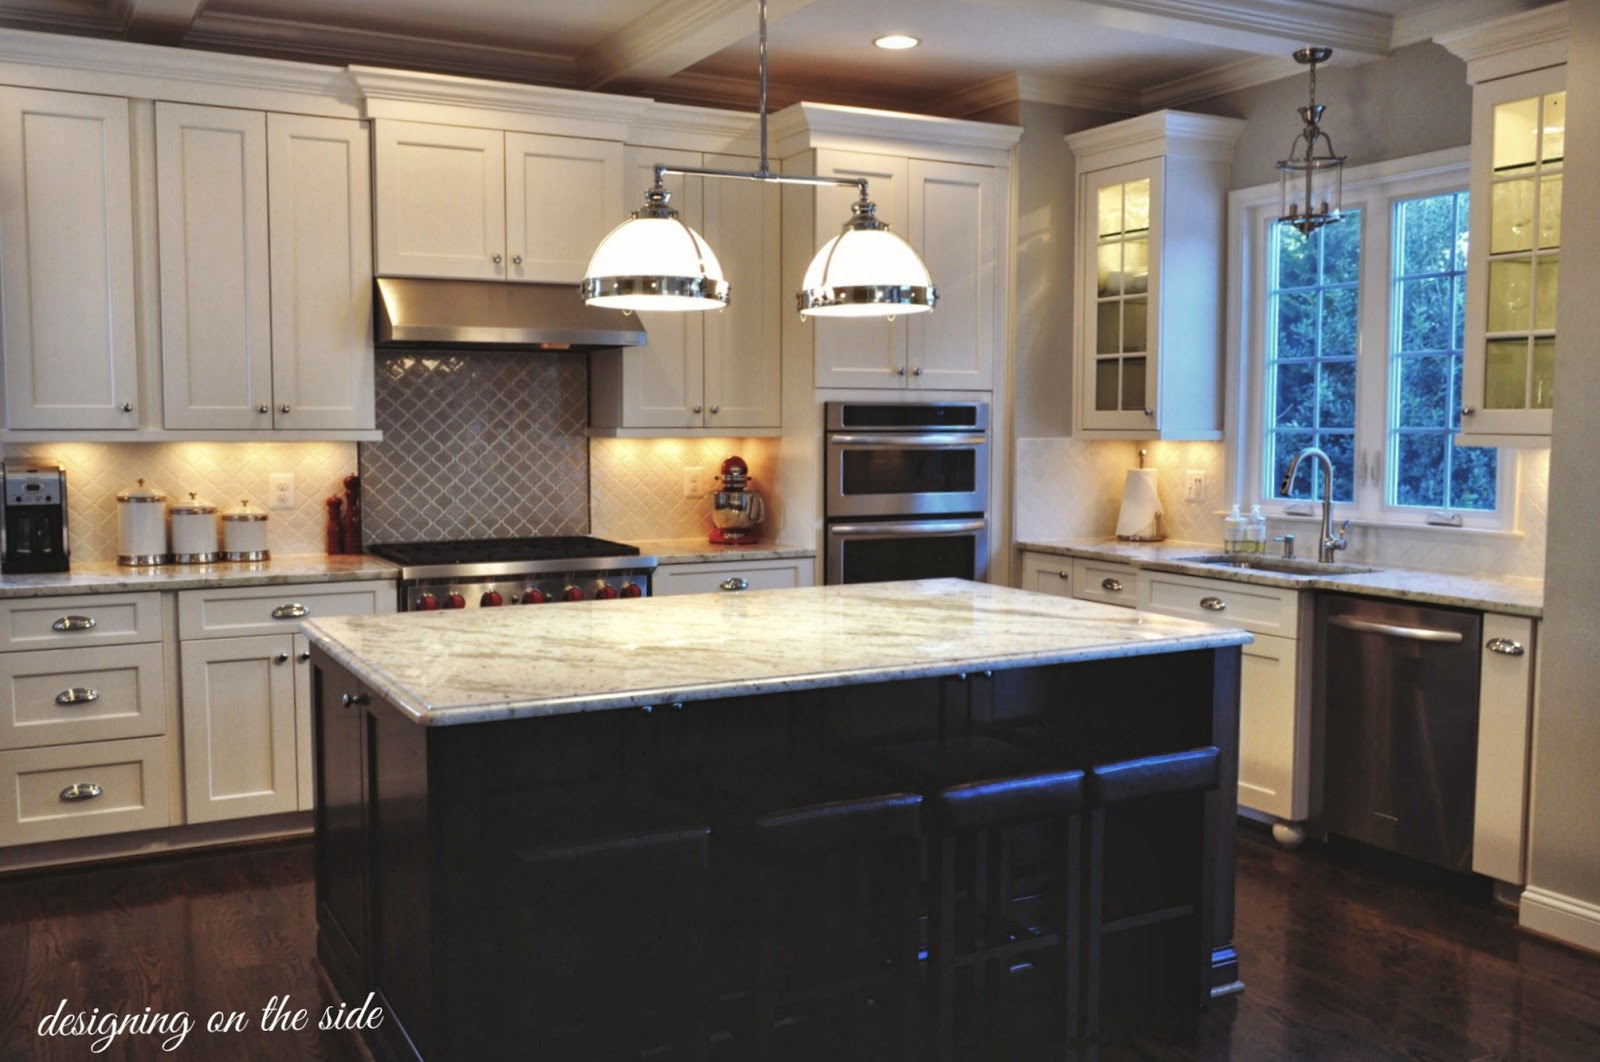 My Dream Kitchen Fashionandstylepolice: Designing On The Side: The Kitchen Of My Dreams….Literally